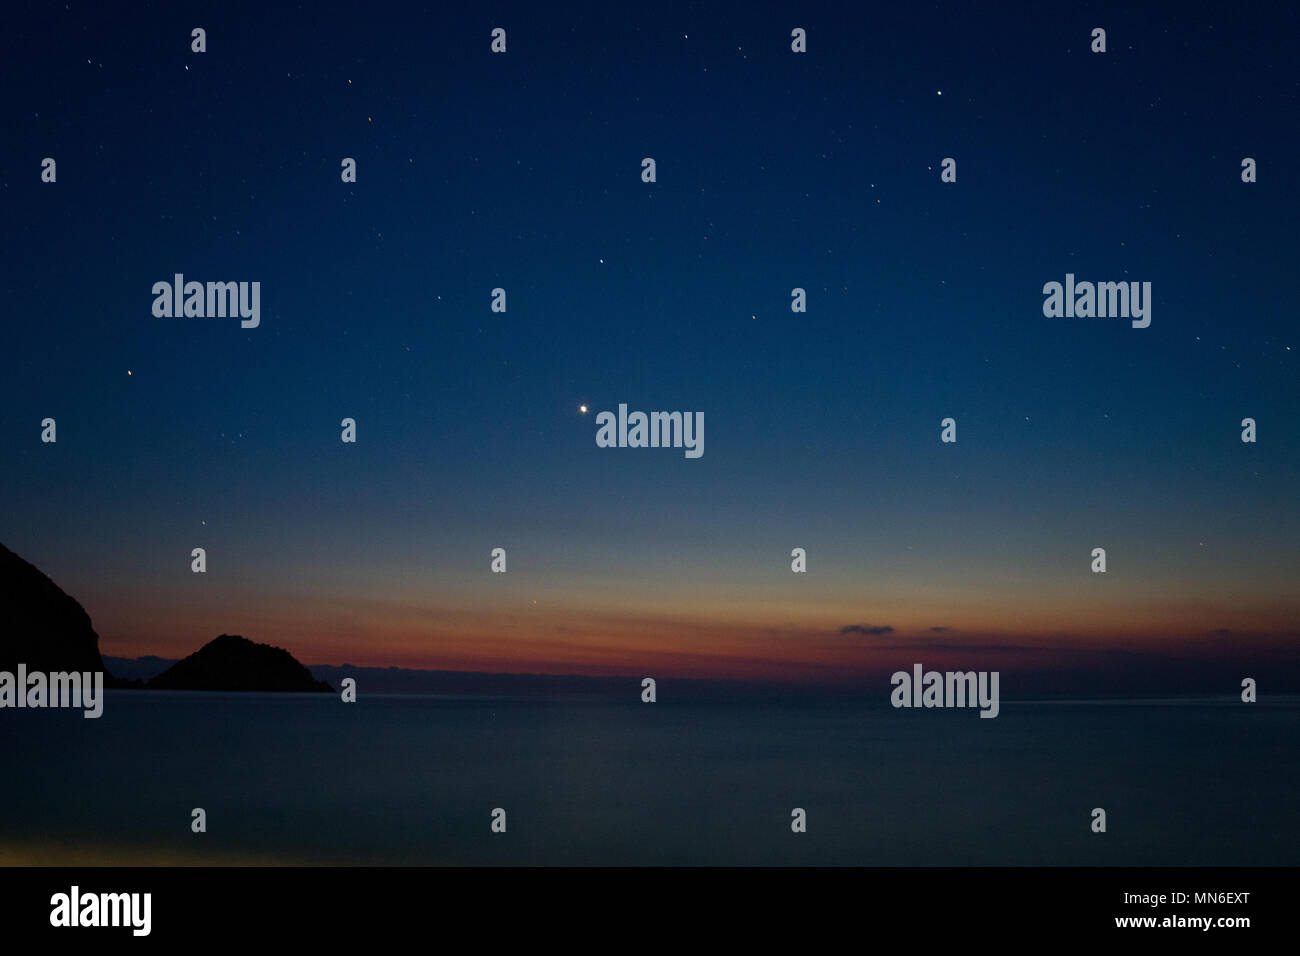 Motion blurred picture of a mediterranean sea at night under a beautiful sky with stars, seen from Petani beach on Cephalonia - Stock Image